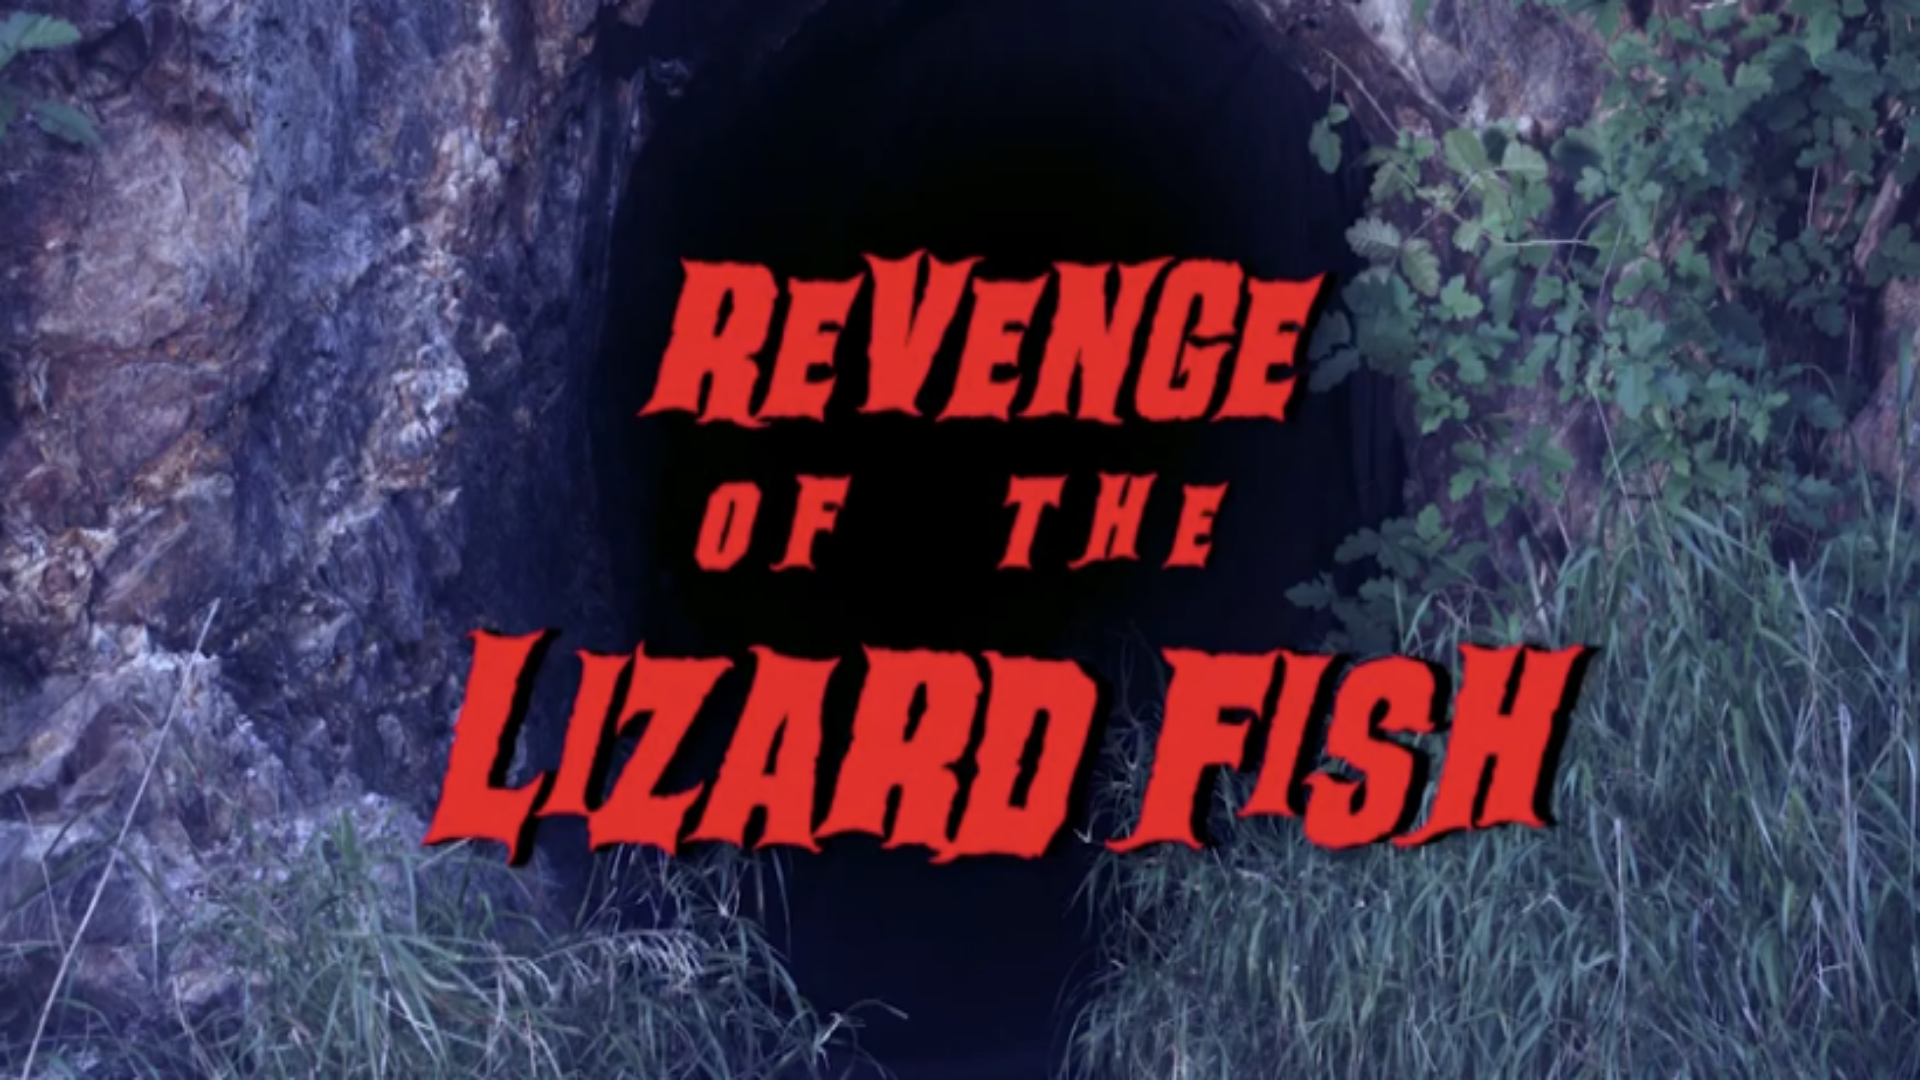 Revenge of the Lizard Fish